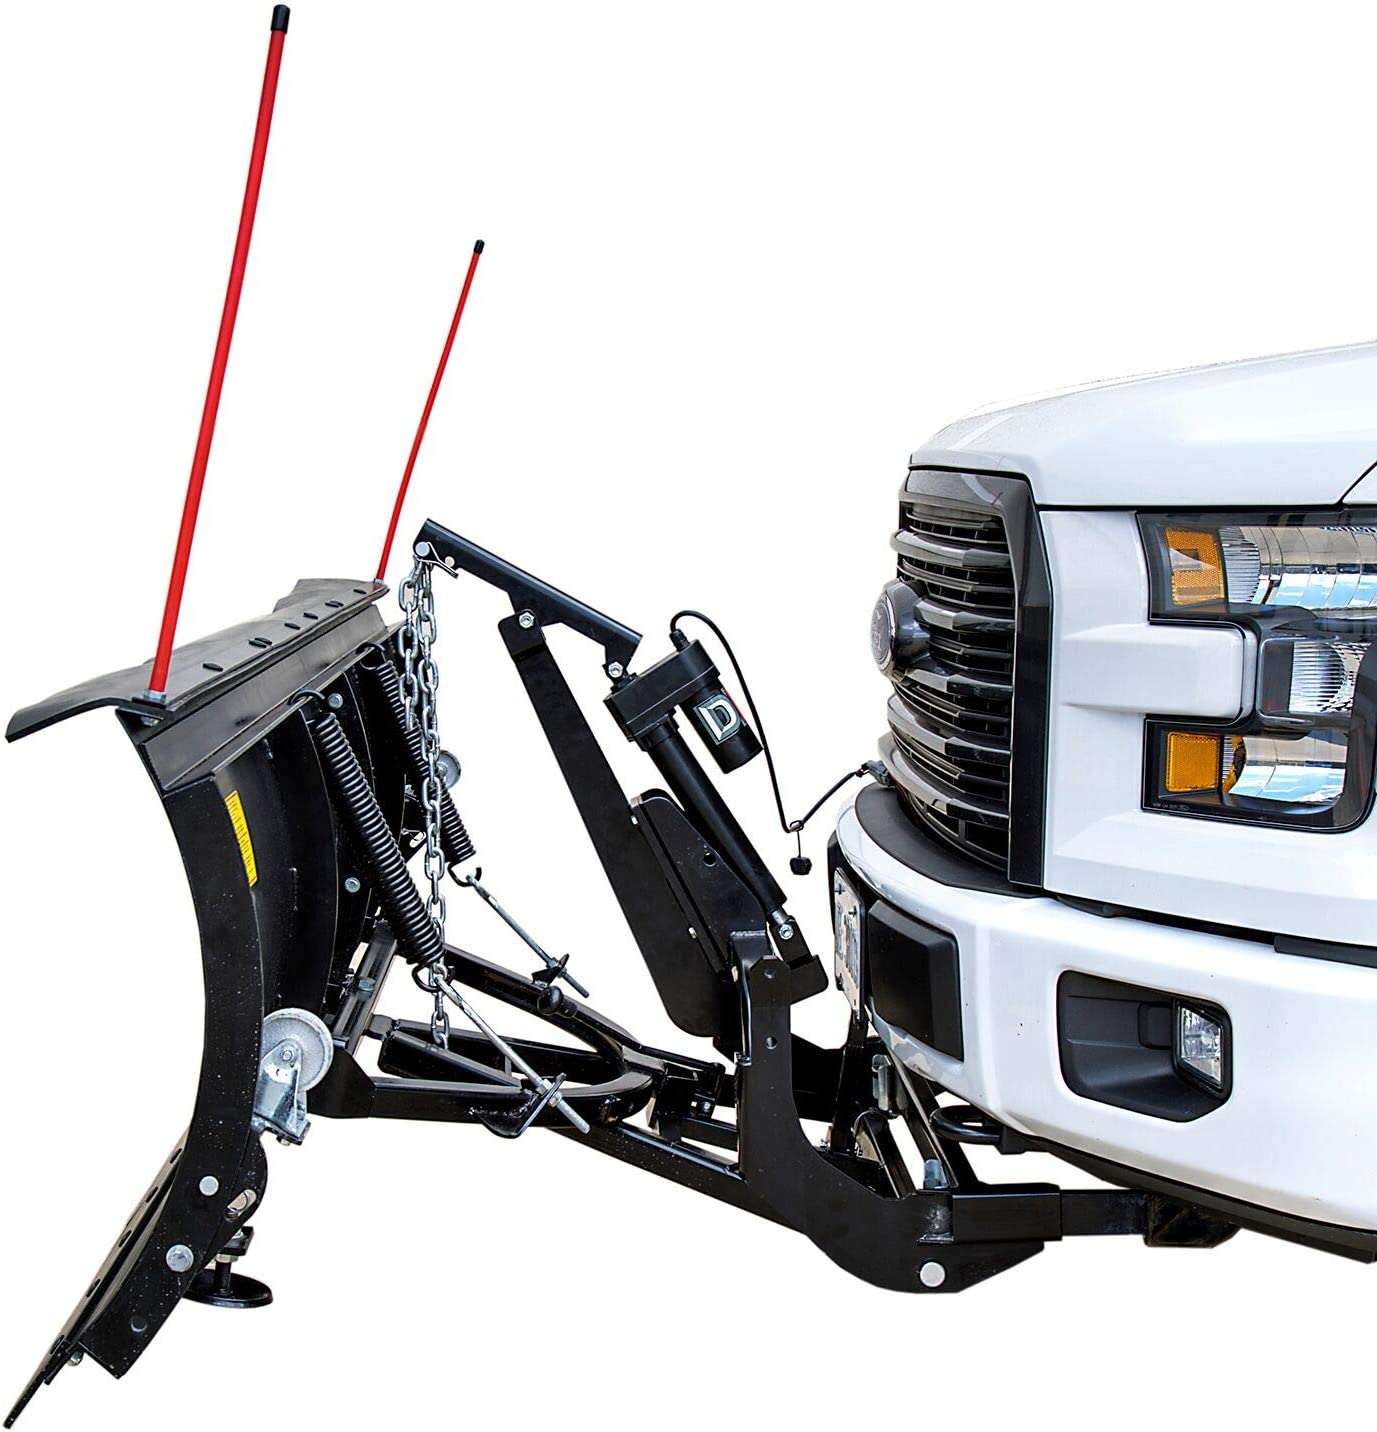 Detail K2 DK2 Storm II Elite 84 X 22 Snow Plow Kit w//Actuator STOR8422ELT